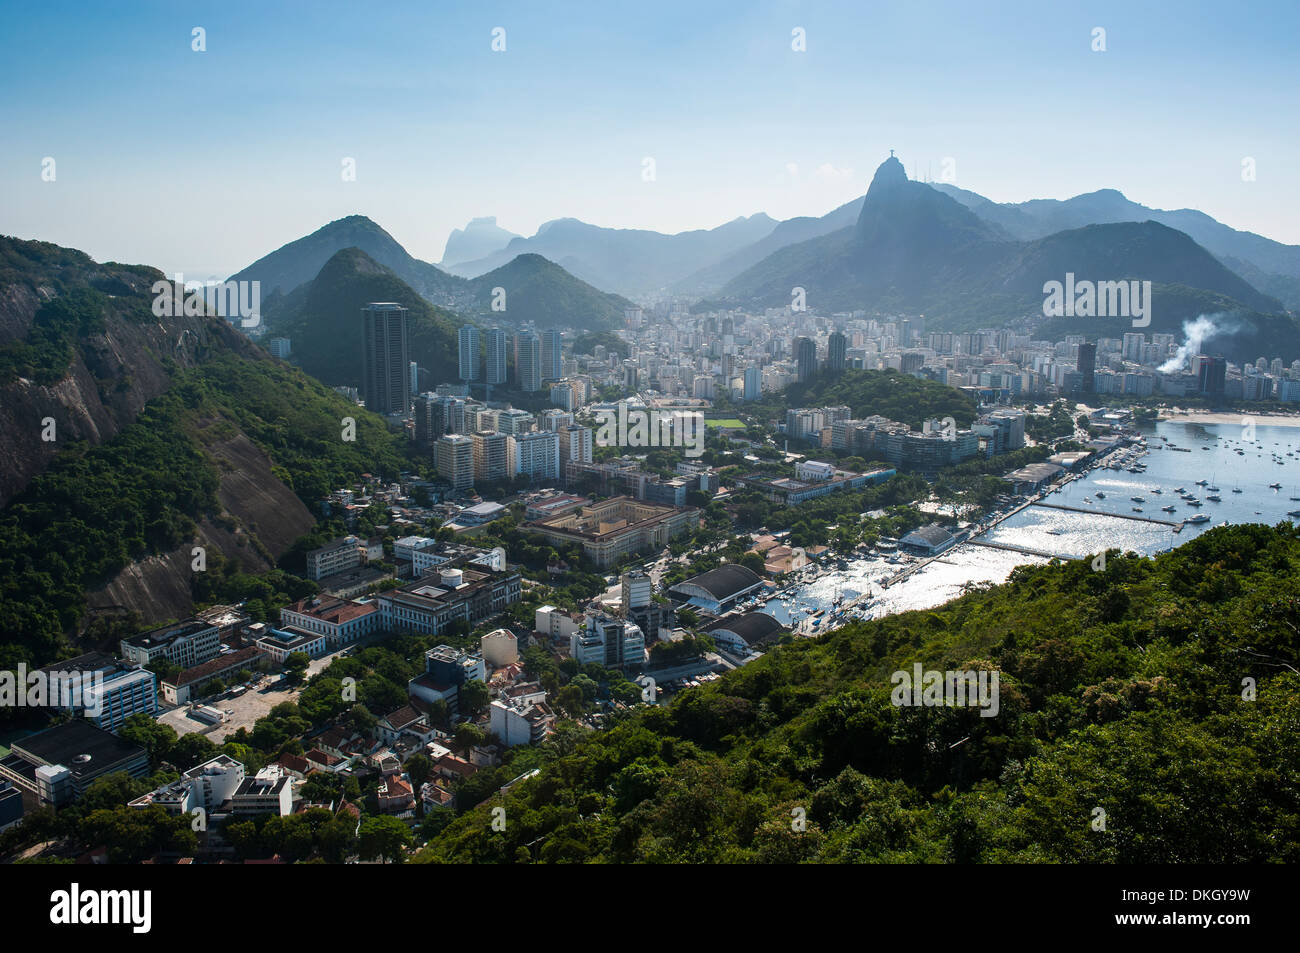 View from the Sugarloaf over Rio de Janeiro, Brazil, South America - Stock Image